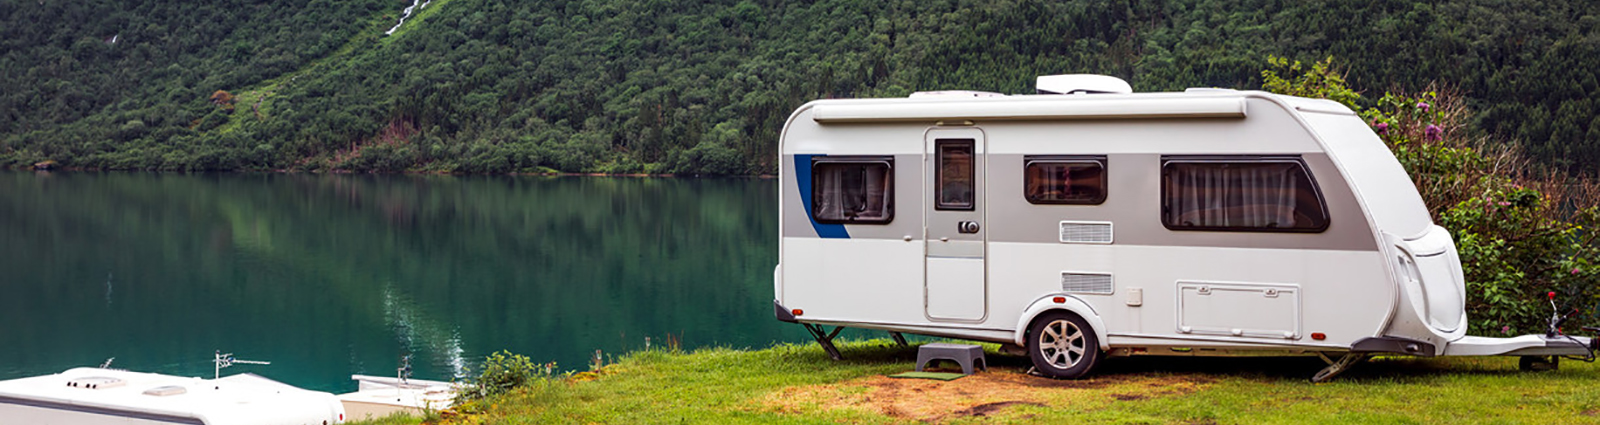 Small camper van outside by a lake